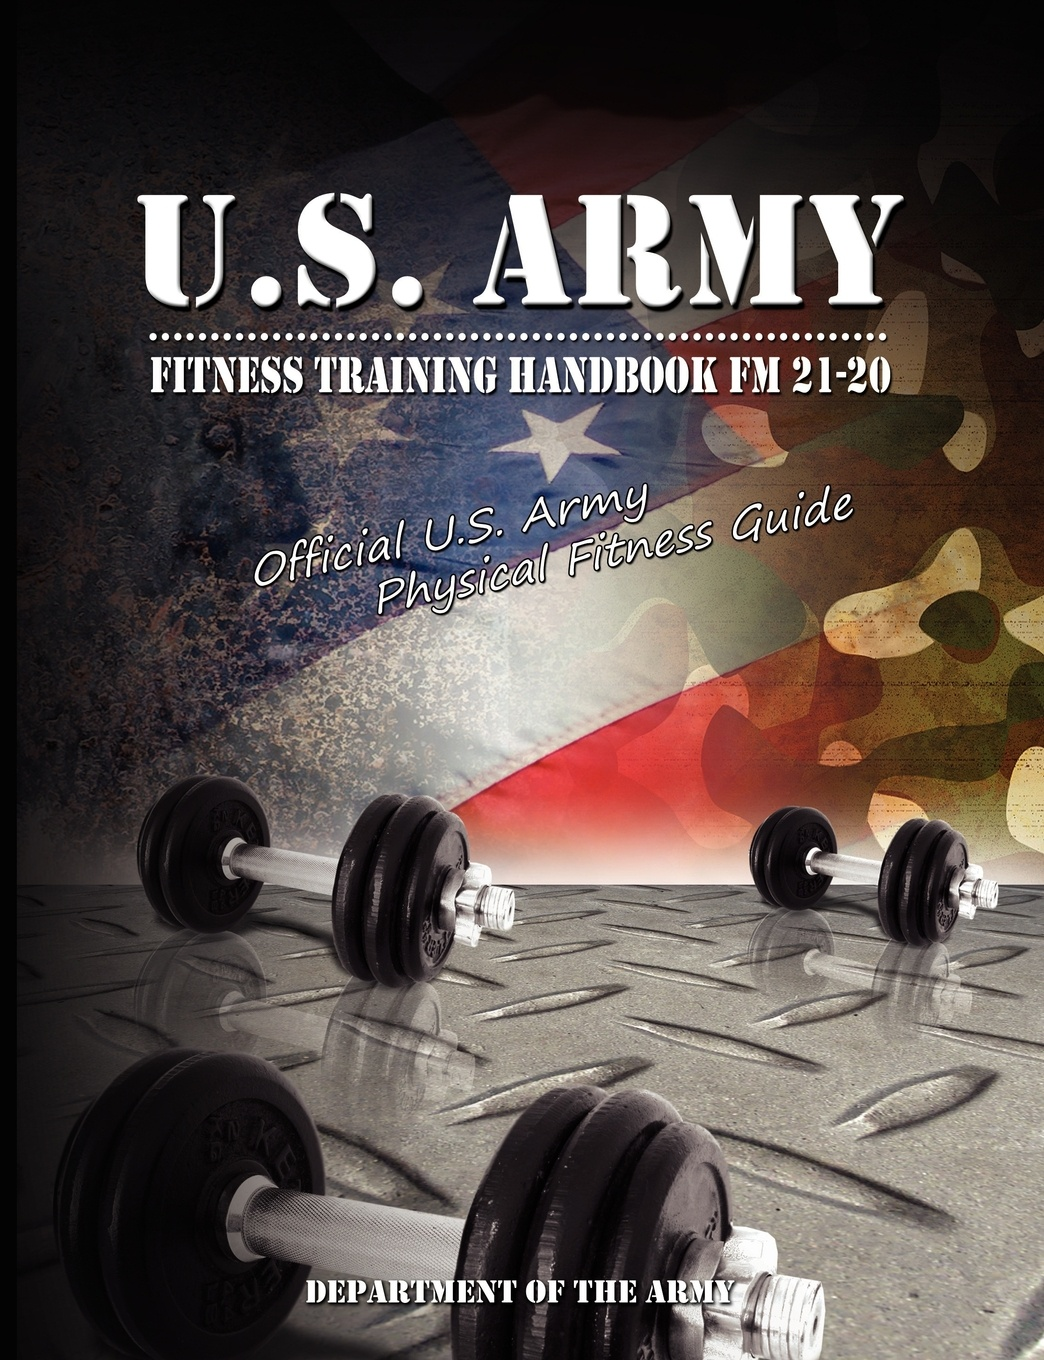 U S Dept of the Army, Of The Army Department of the Army, Department of the Army U.S. Army Fitness Training Handbook FM 21-20. Official U.S. Army Physical Fitness Guide us army military uniform for men training digital camouflage suit pilots parachuted outdoor summer training suit